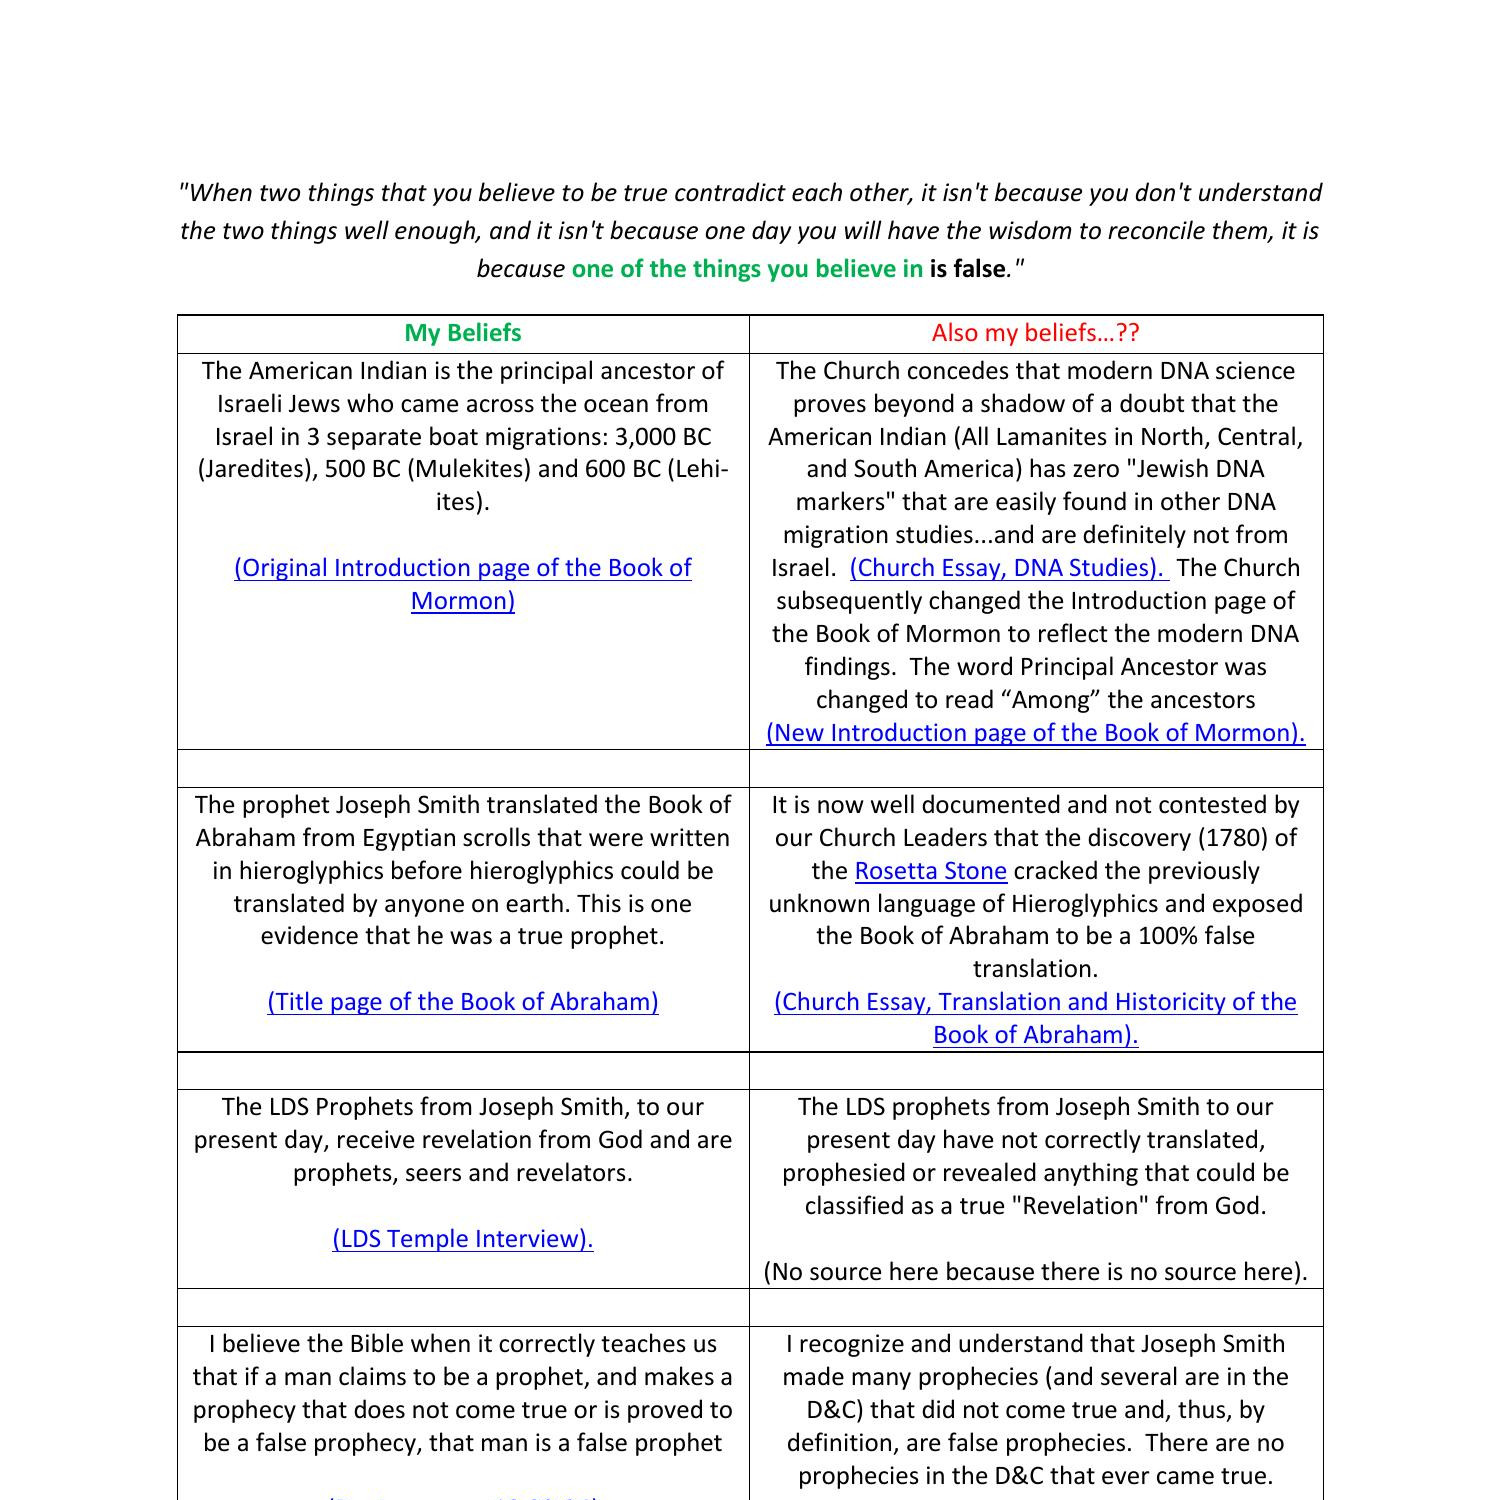 Proquest dissertations & theses full text